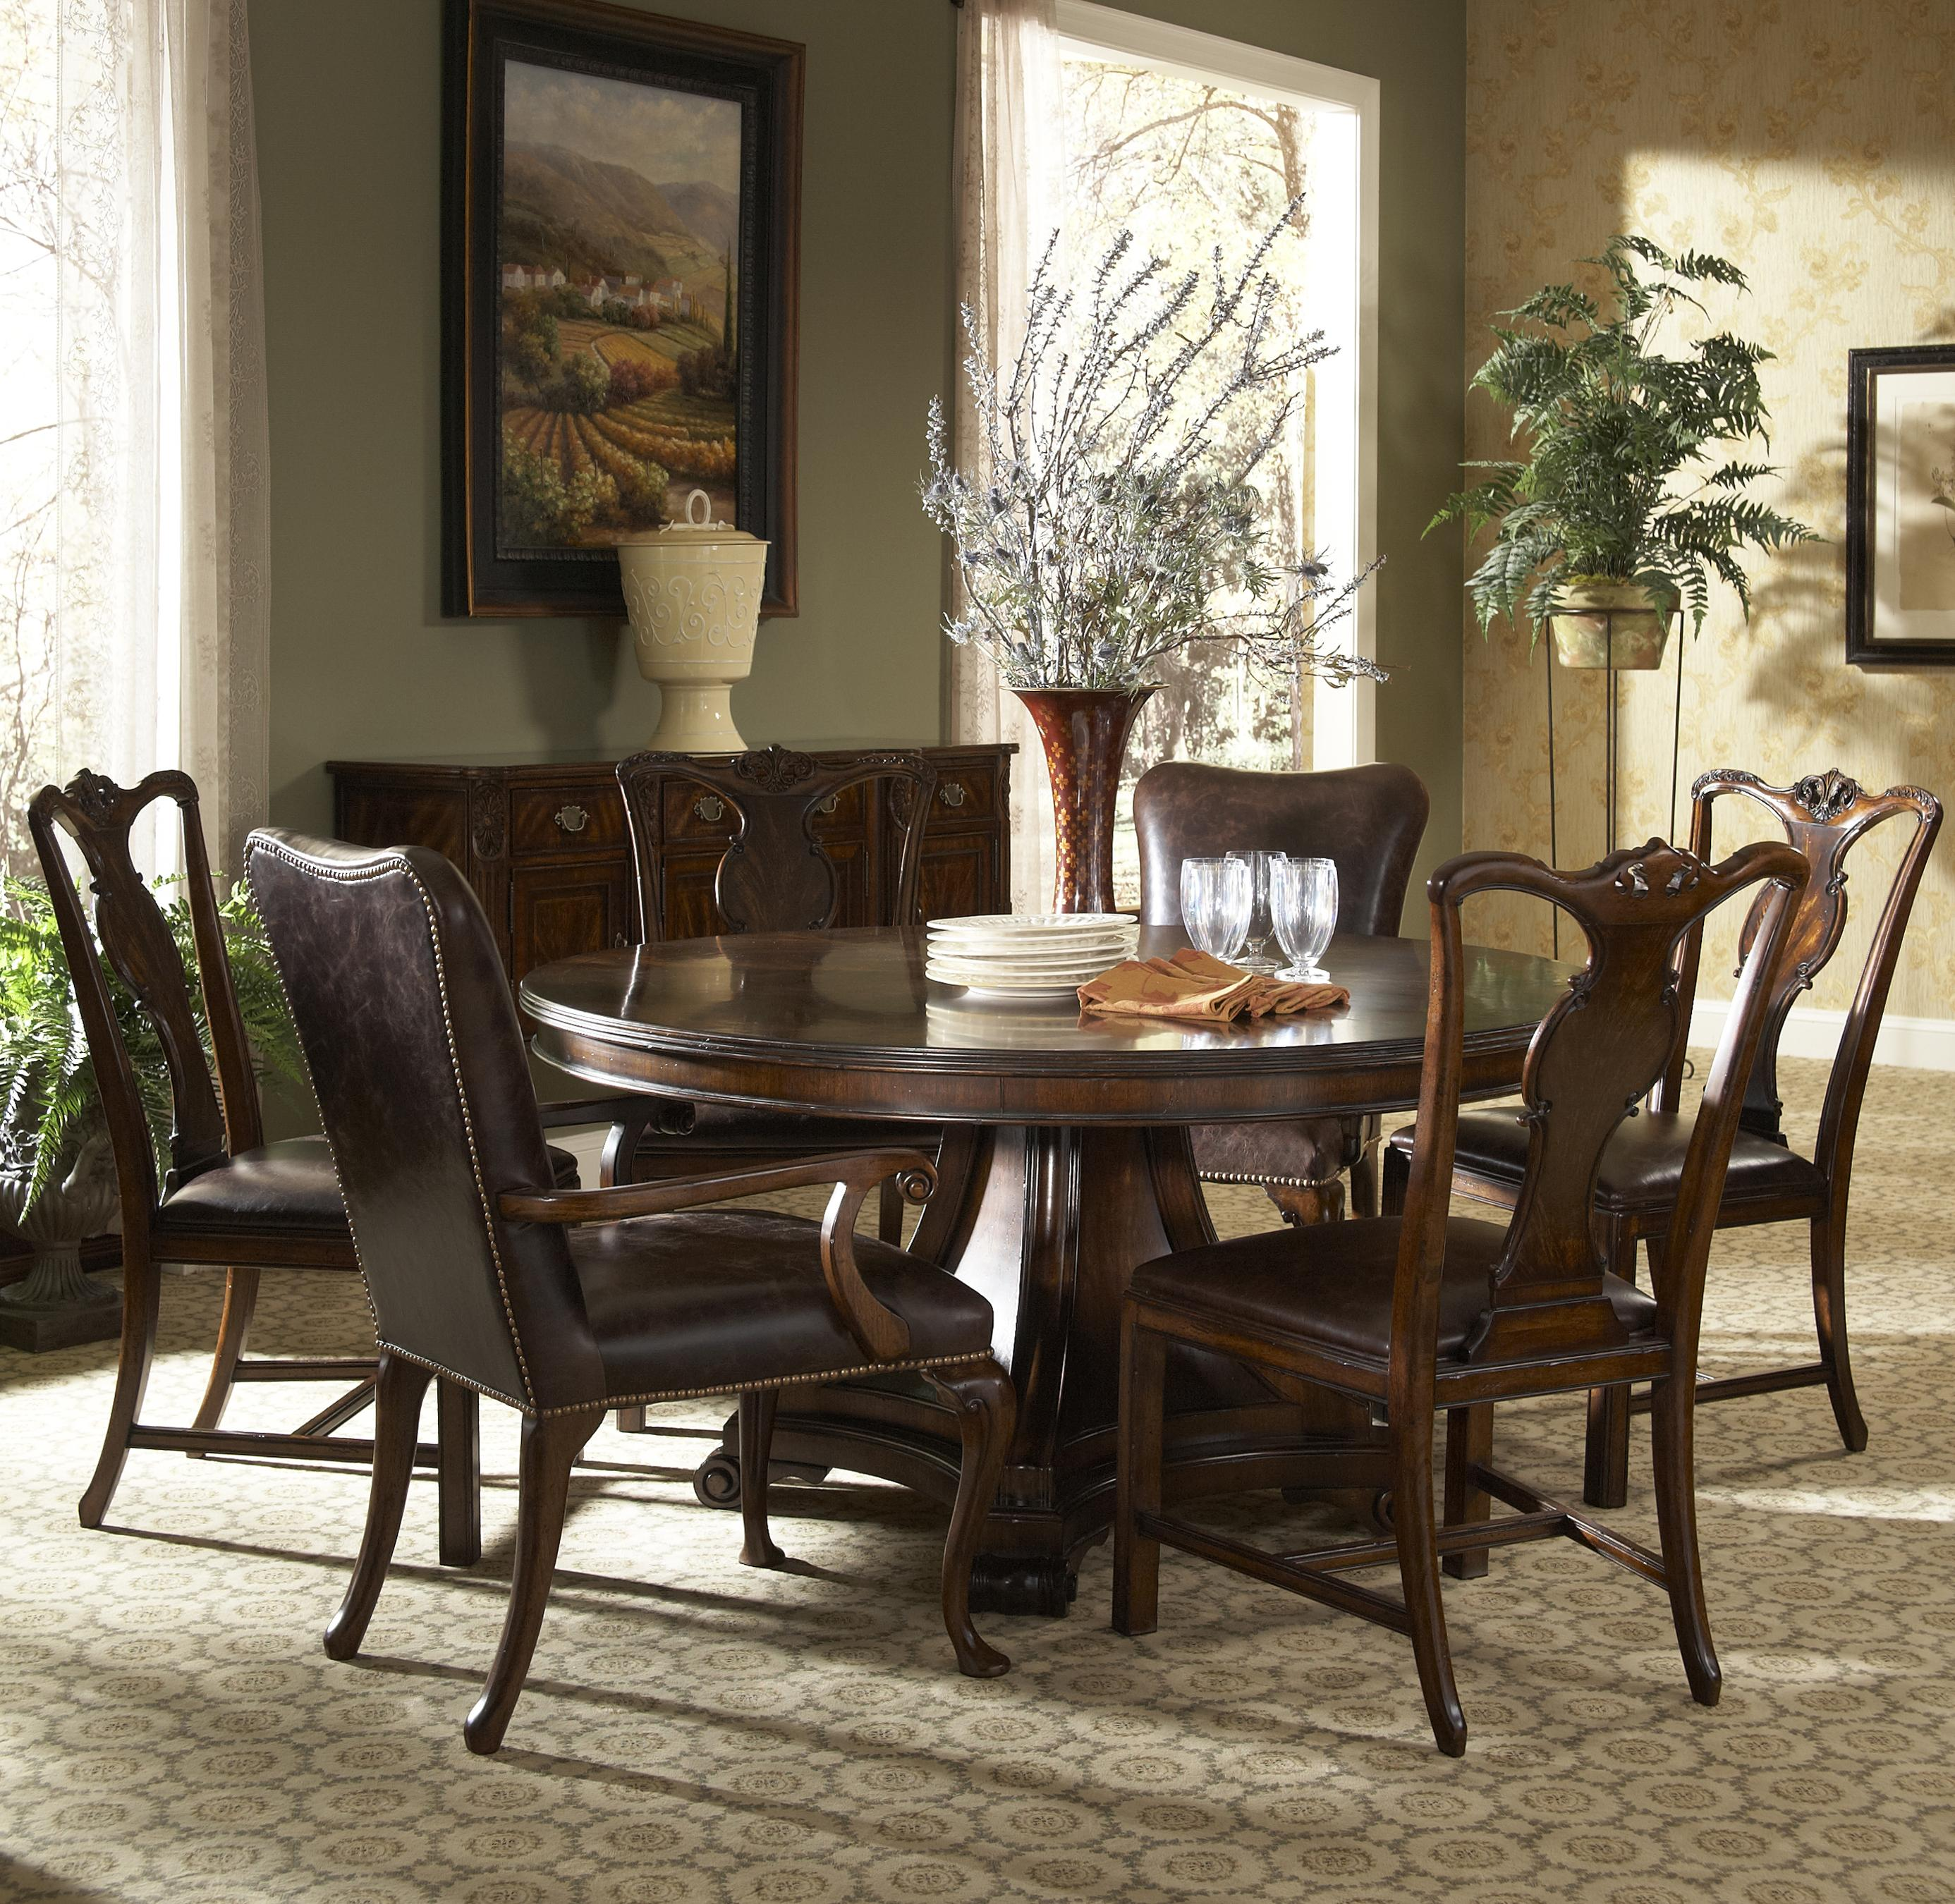 Arm Chair Dining Room Design Gorgeous 7 Piece Round Dining Table With Splat Back Dining Side Chairs And . Design Ideas